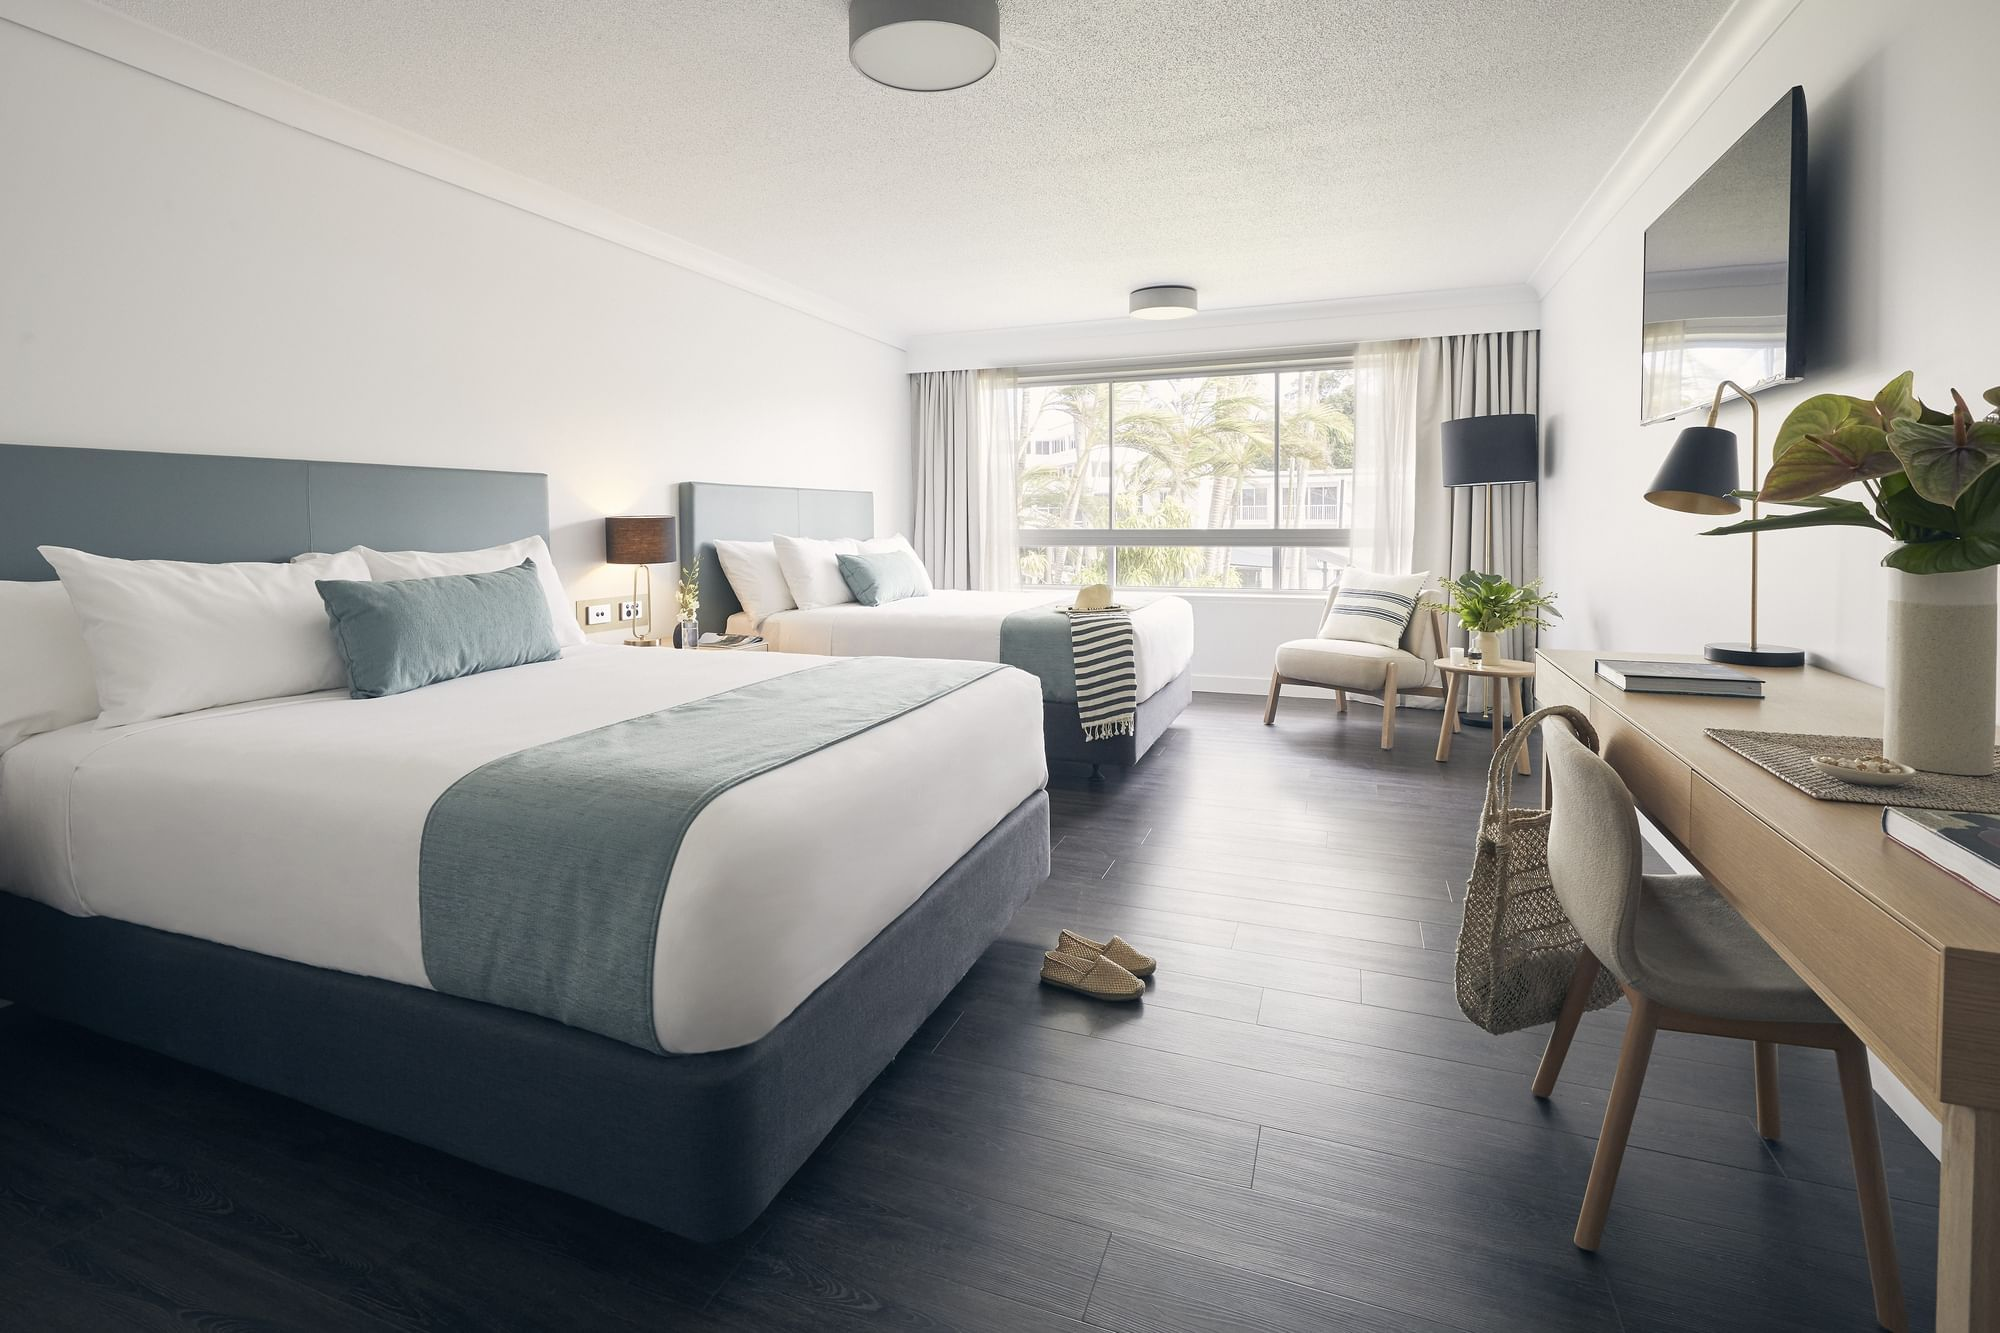 Standard twin Room with double beds at Daydream Island Resort